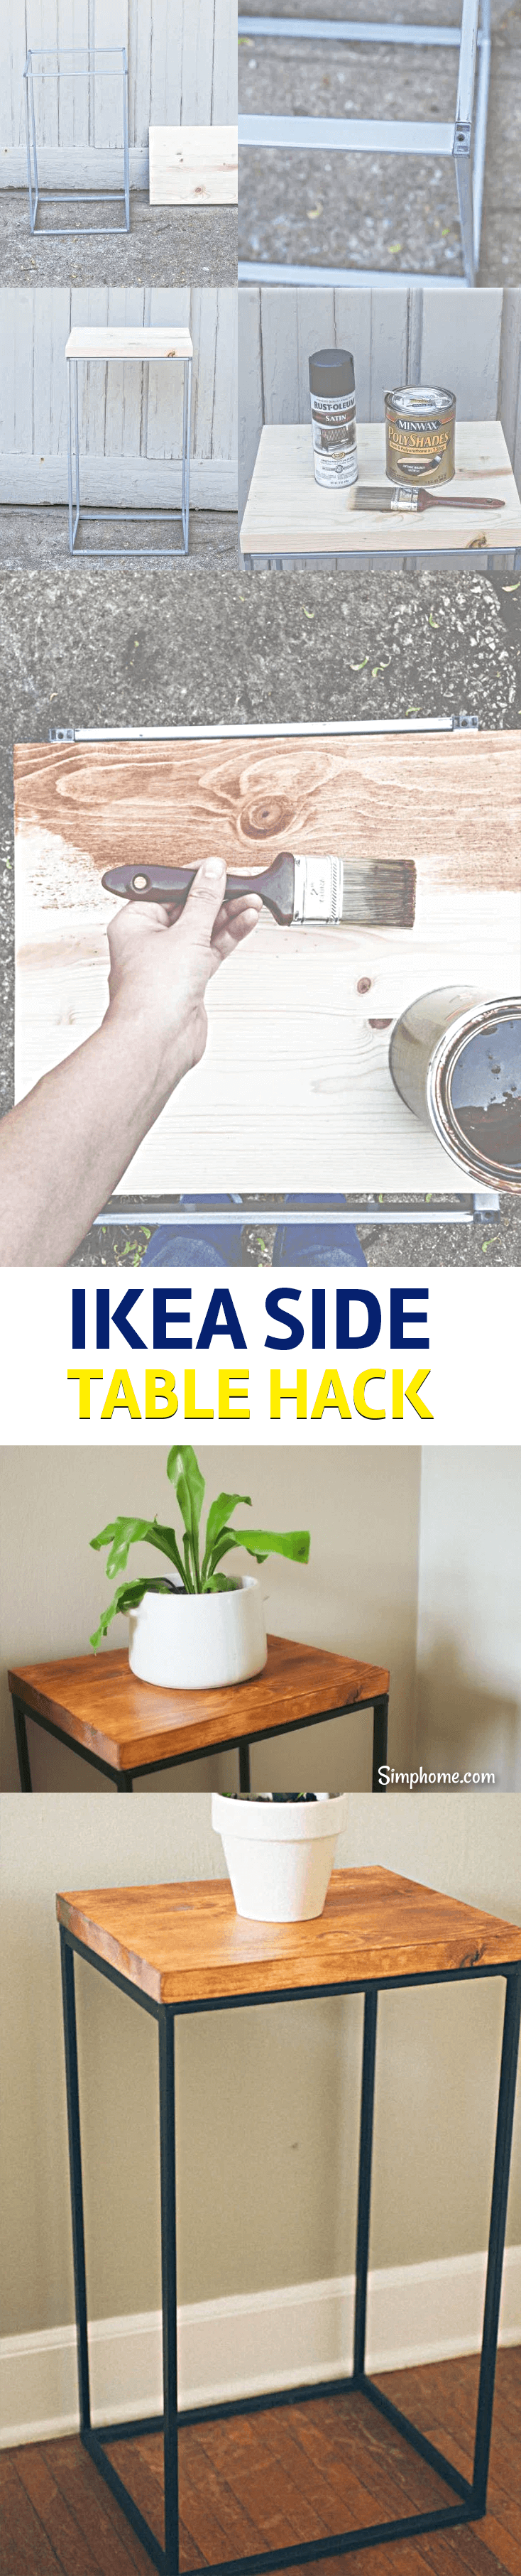 Making a Side Table ikea hack 6 simphome com p